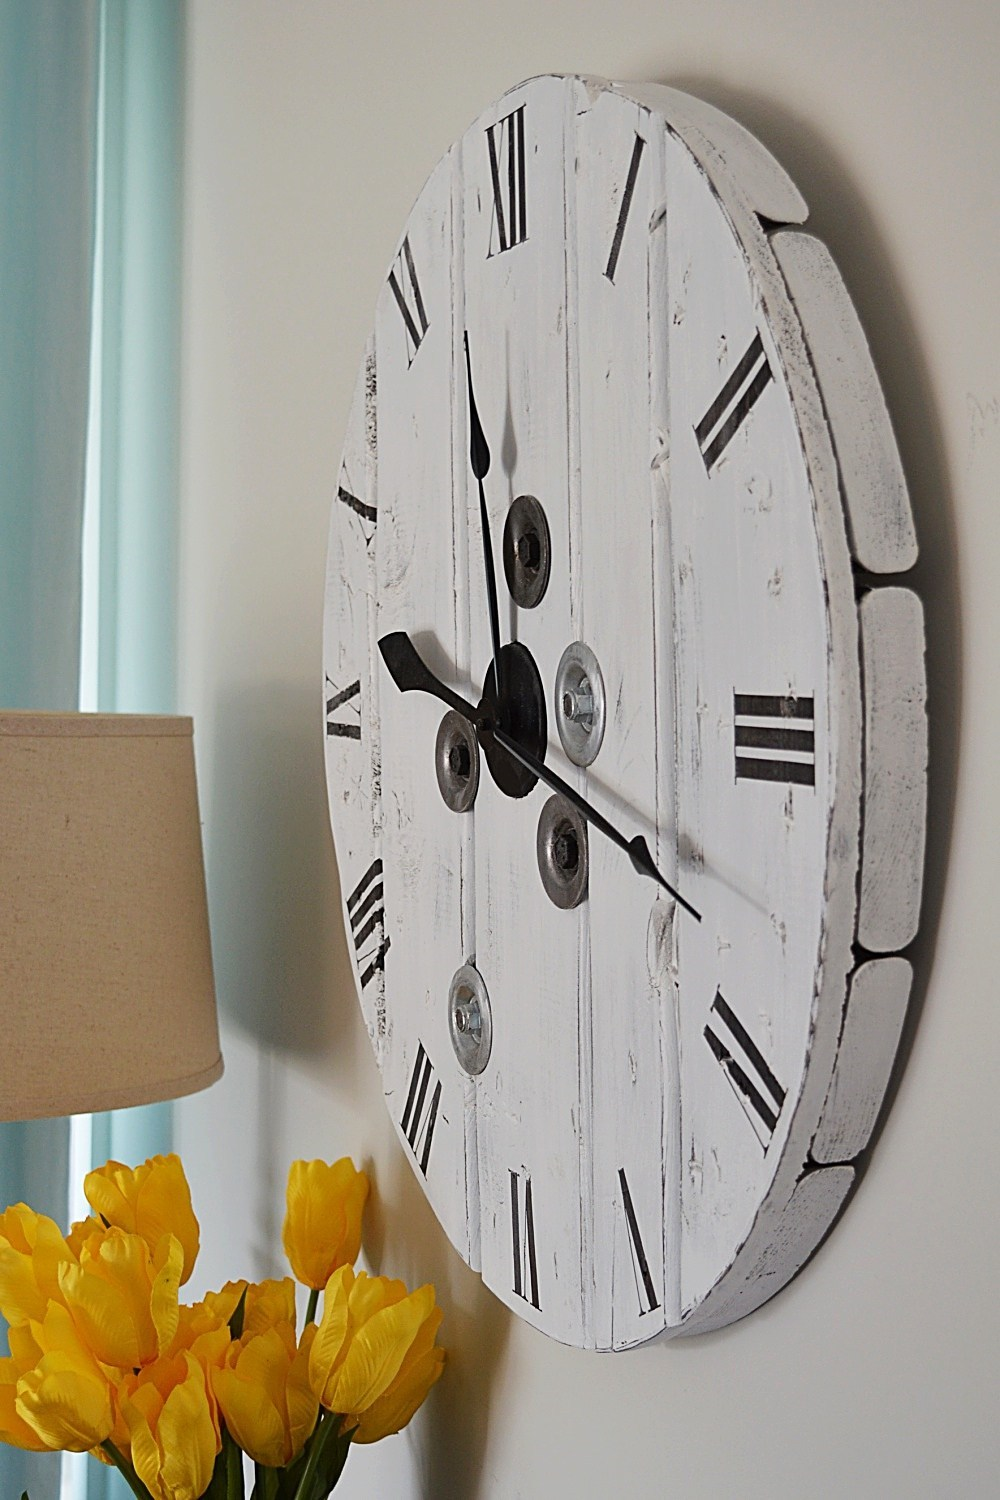 All About Clocks- How to Make a Farmhouse Clock from a Cable Reel by The Vanderveen House